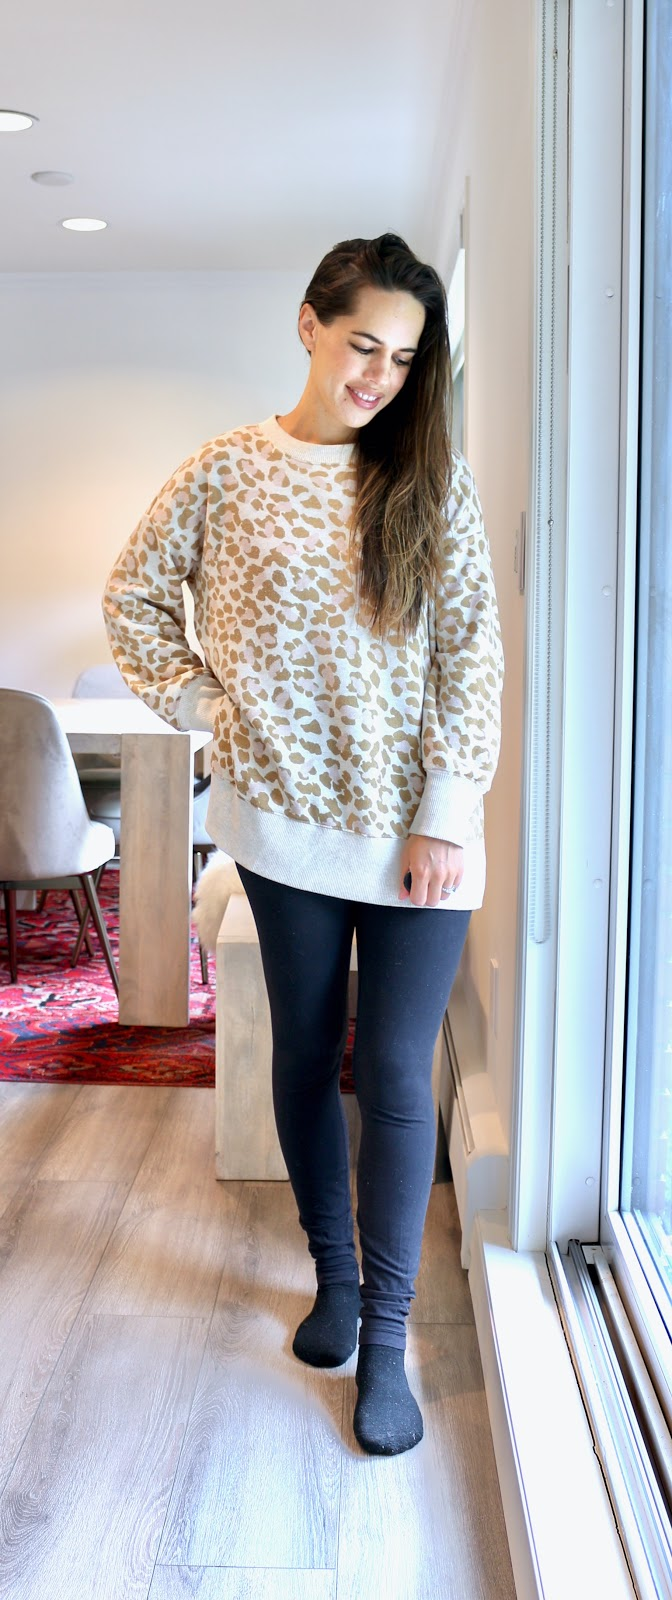 Jules in Flats - Oversized Leopard Sweatshirt (Easy Work from Home Outfit)